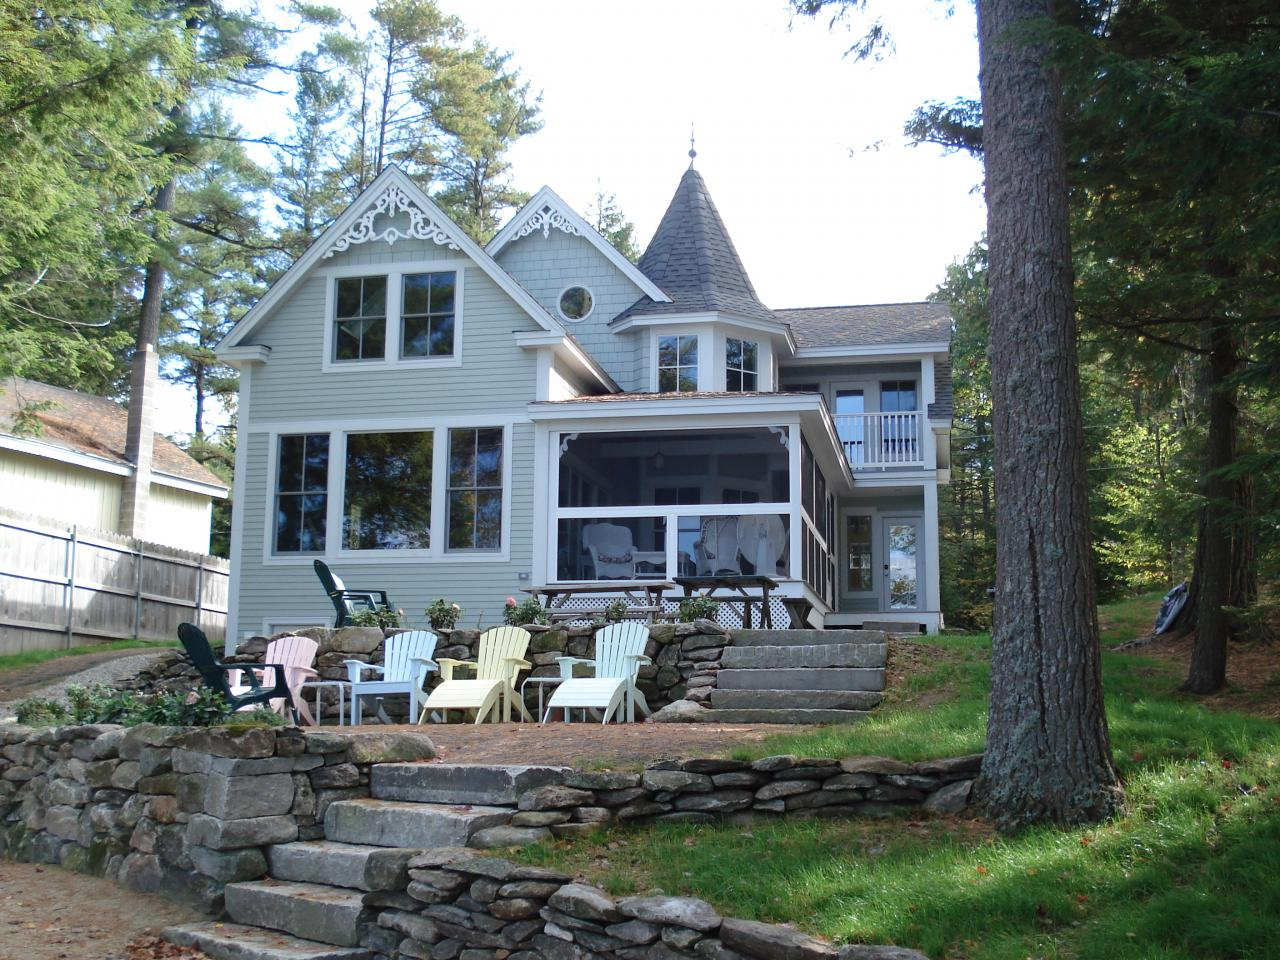 Lakeside Victorian reproduction home in Rindge, NH